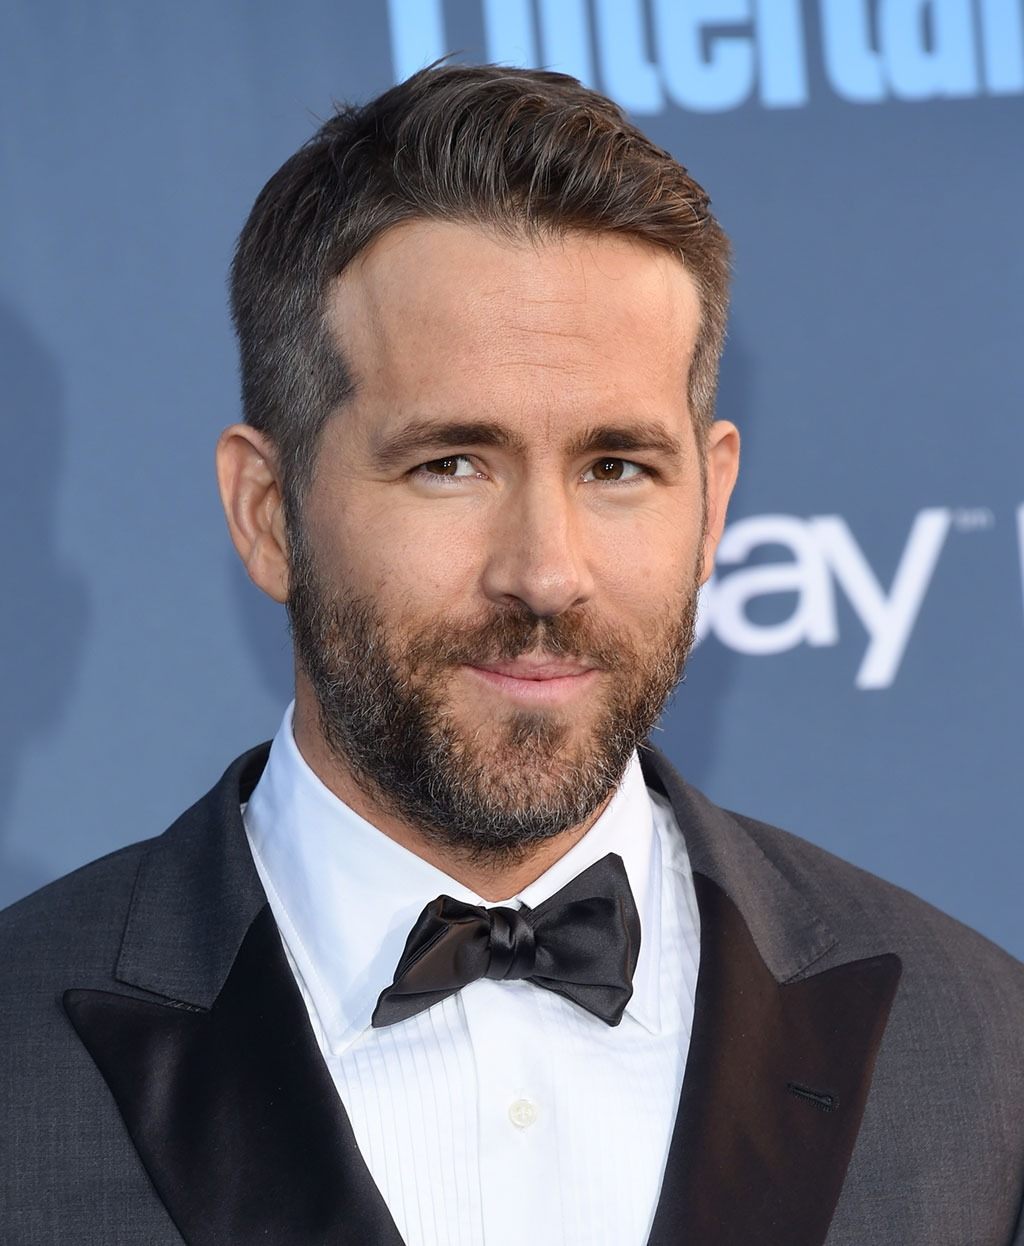 celebrity hairstyles for men over 40